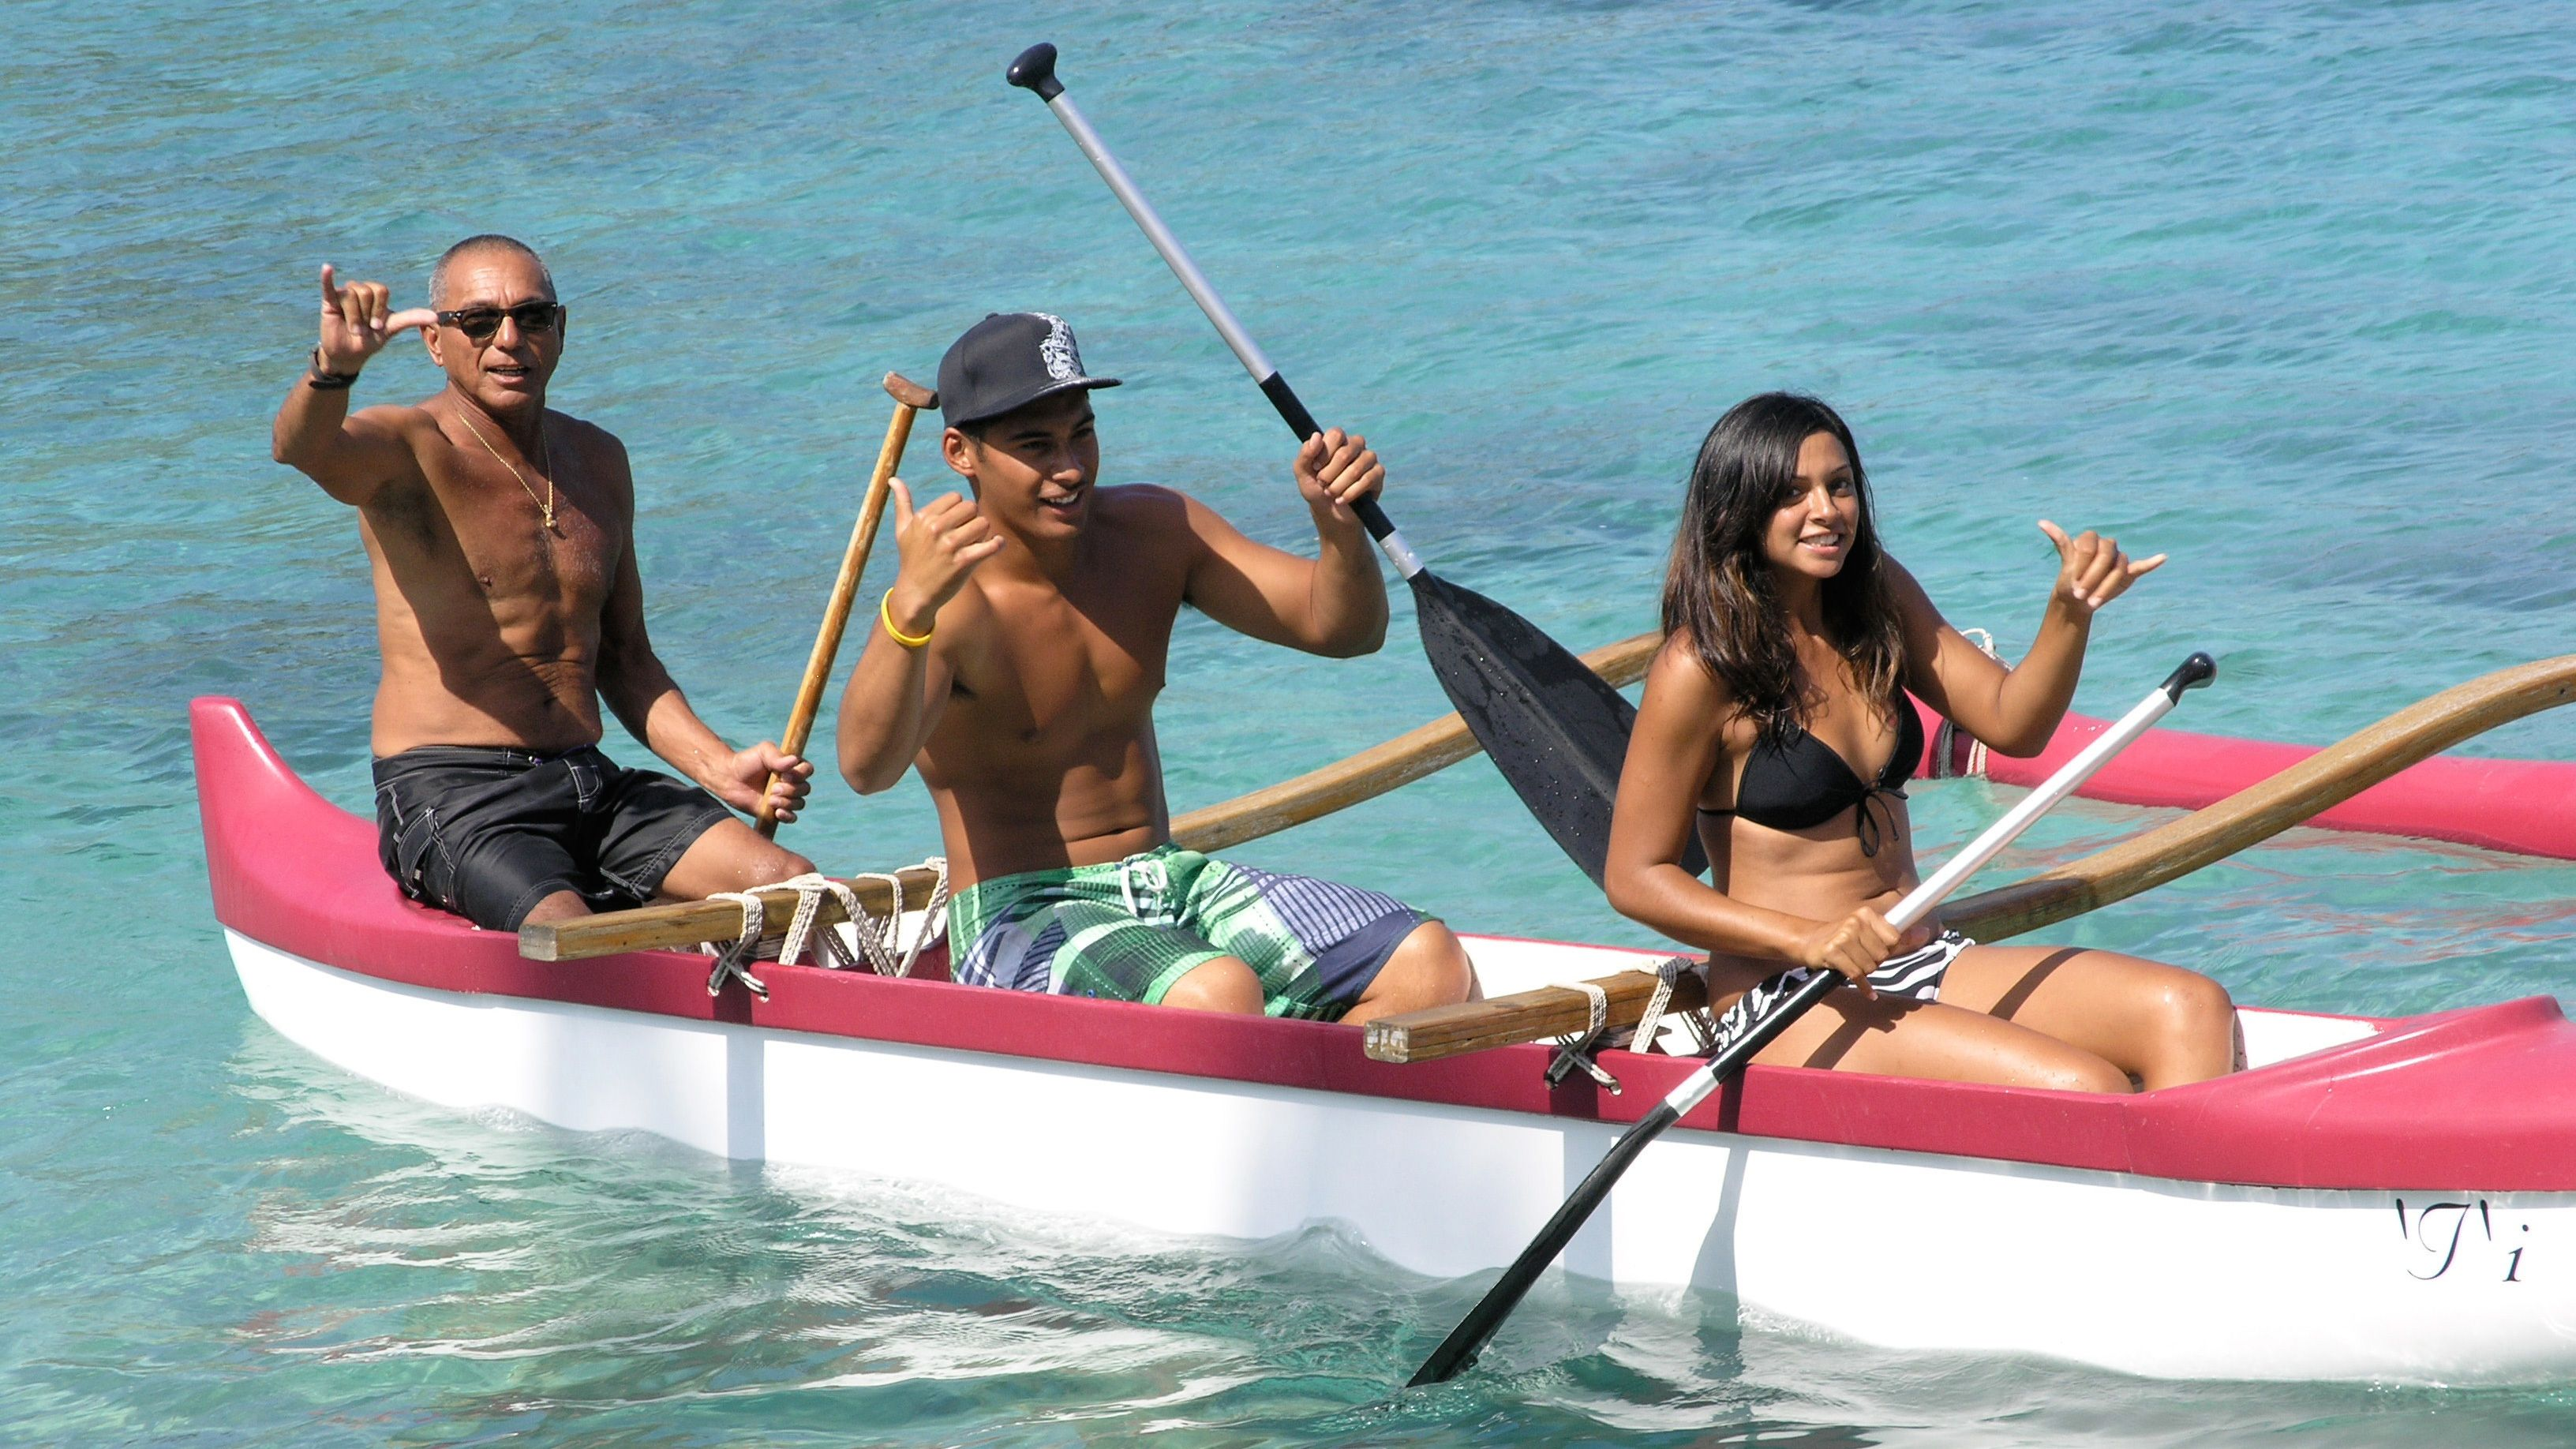 Group in an outrigger canoe on Big Island